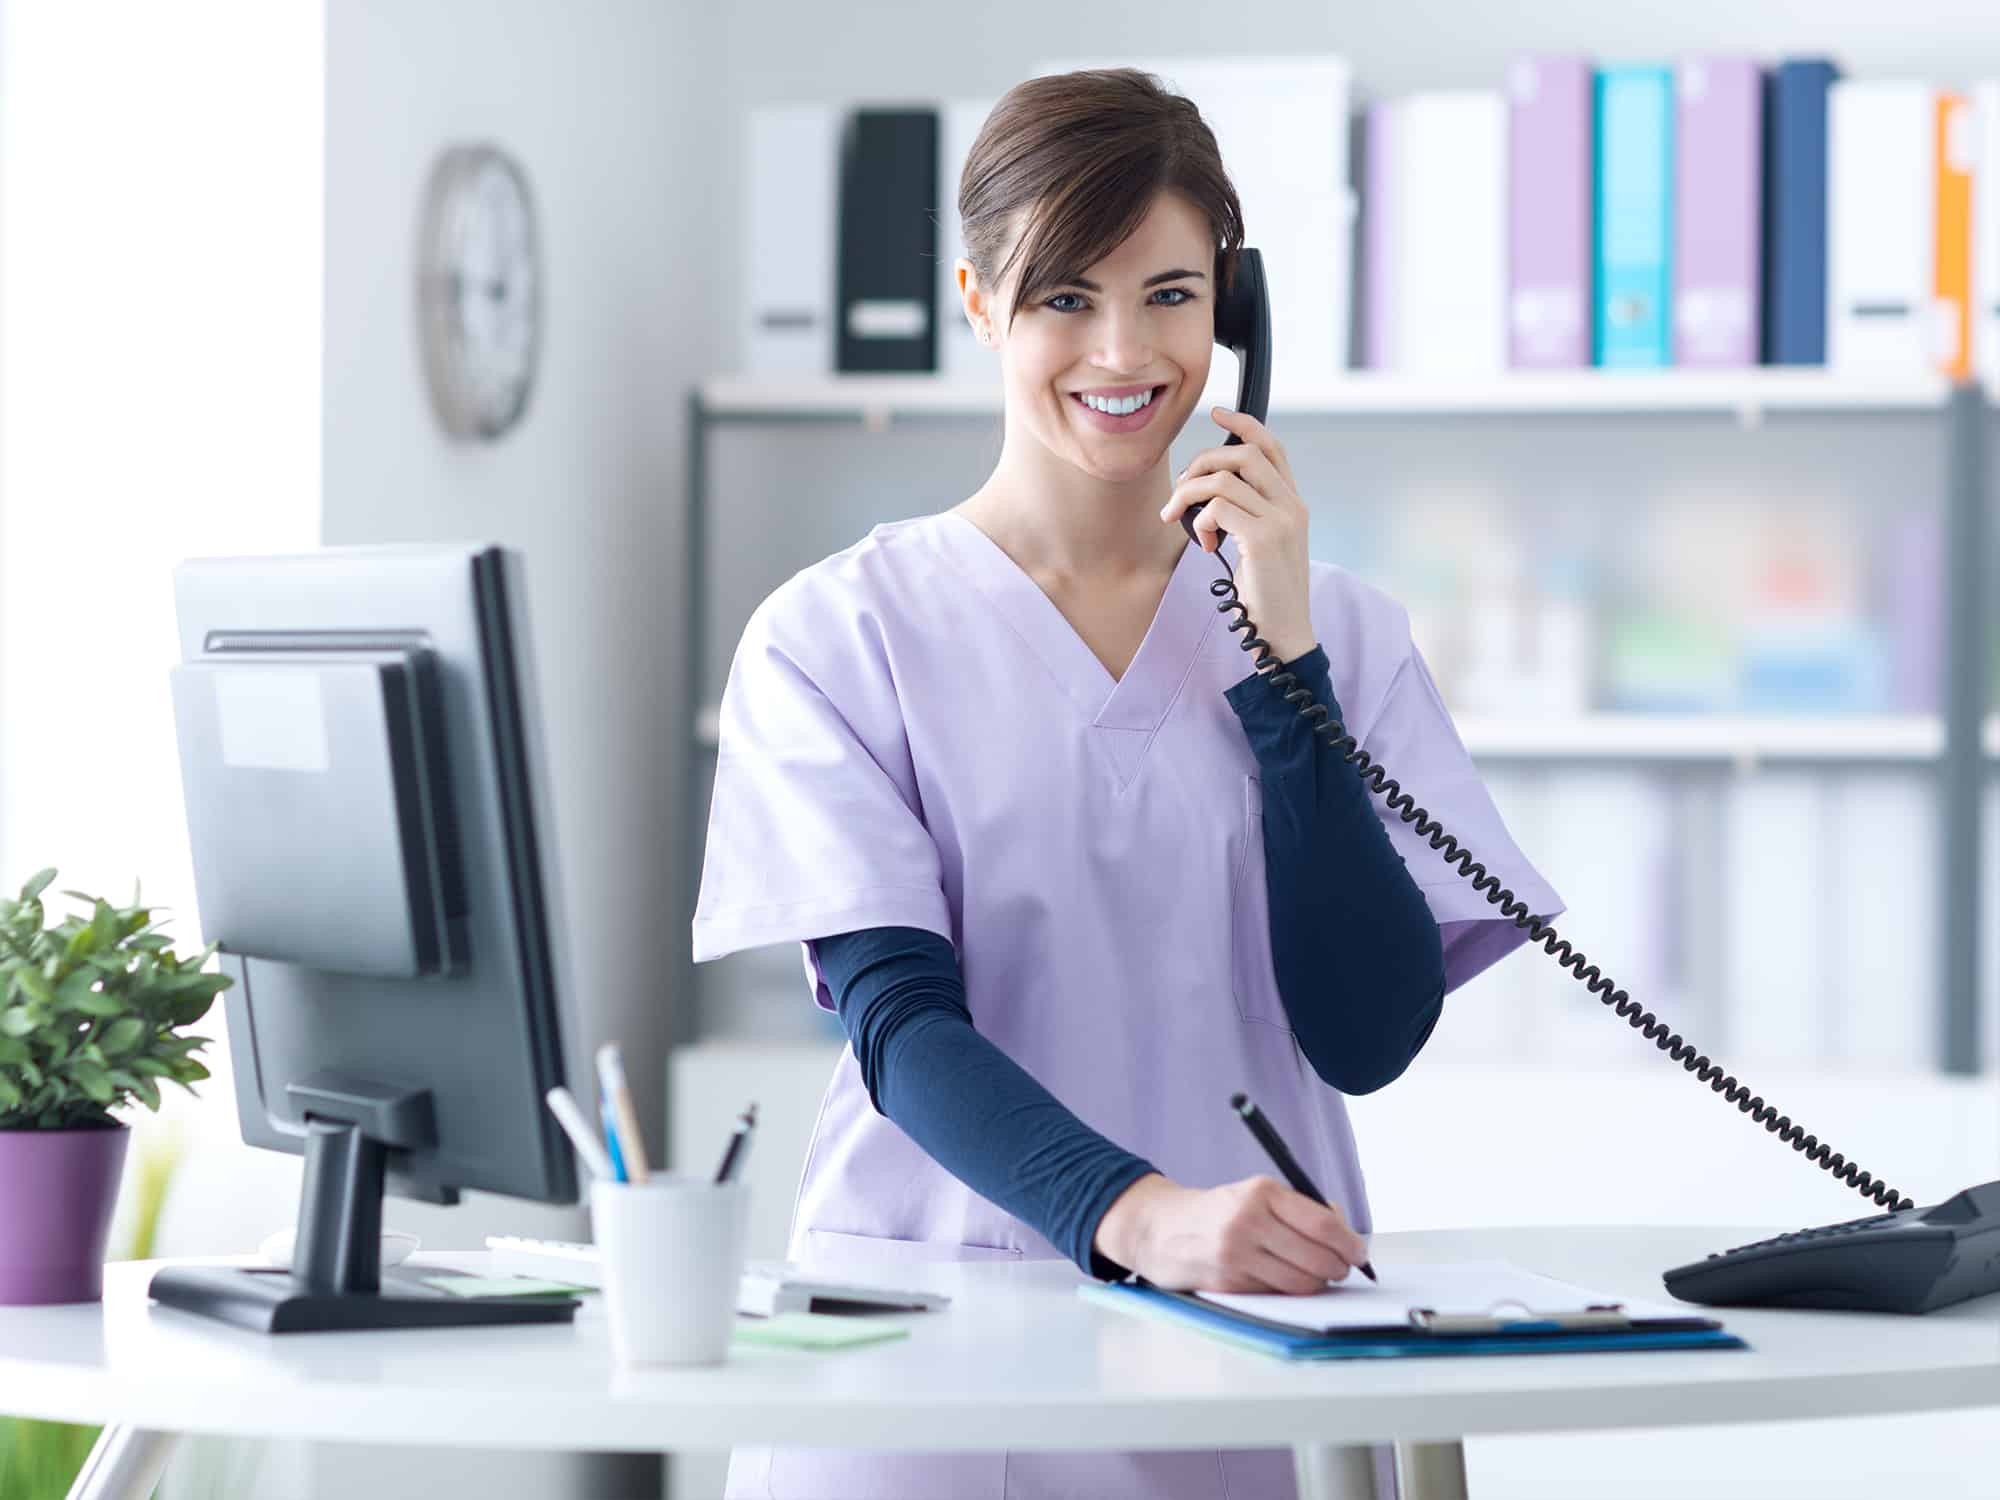 dental assistant in scrubs answers the phone